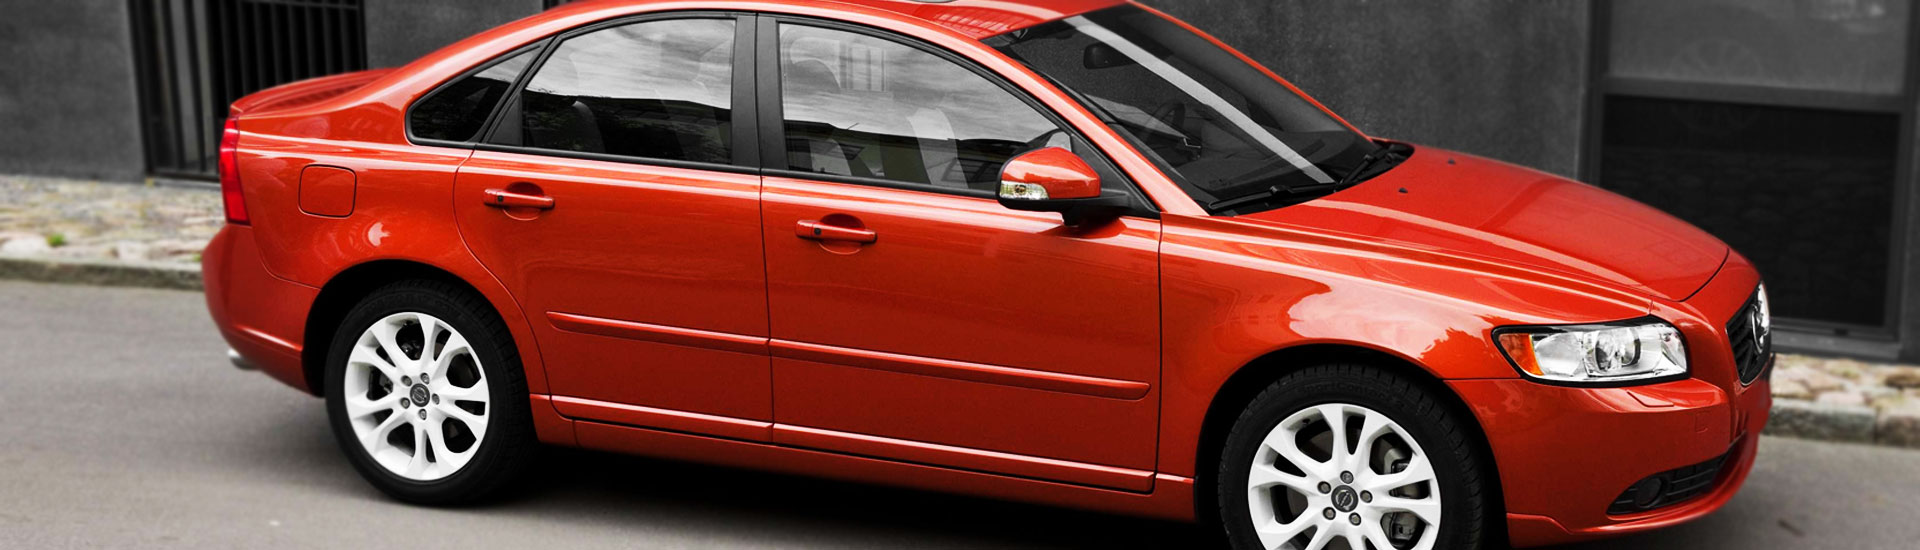 Volvo S40 Window Tint